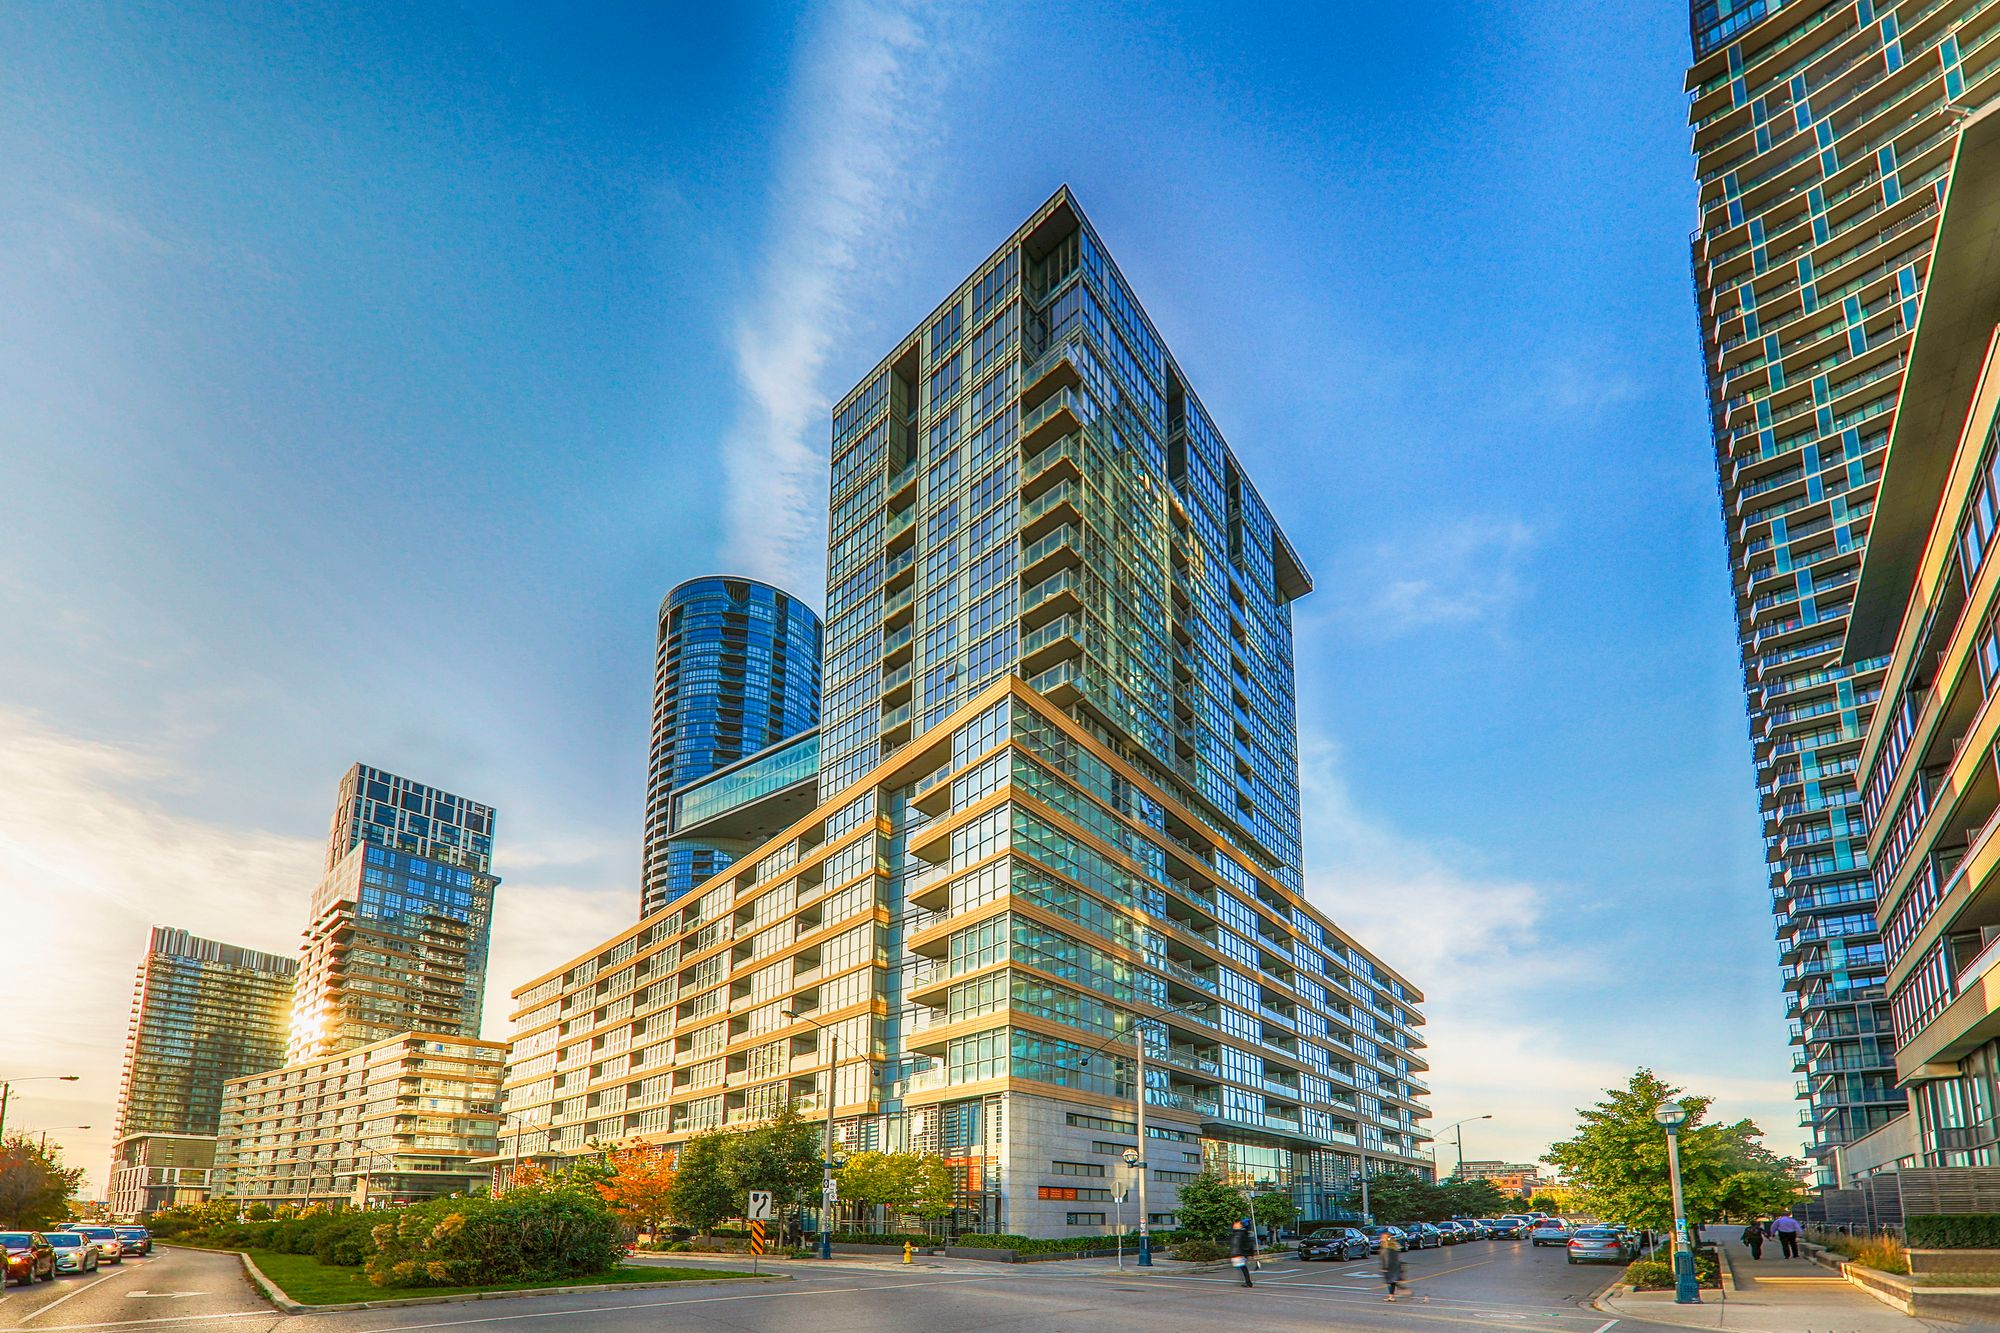 10-26 Capreol Crt. This condo at Parade Condos is located in  Downtown, Toronto - image #1 of 4 by Strata.ca